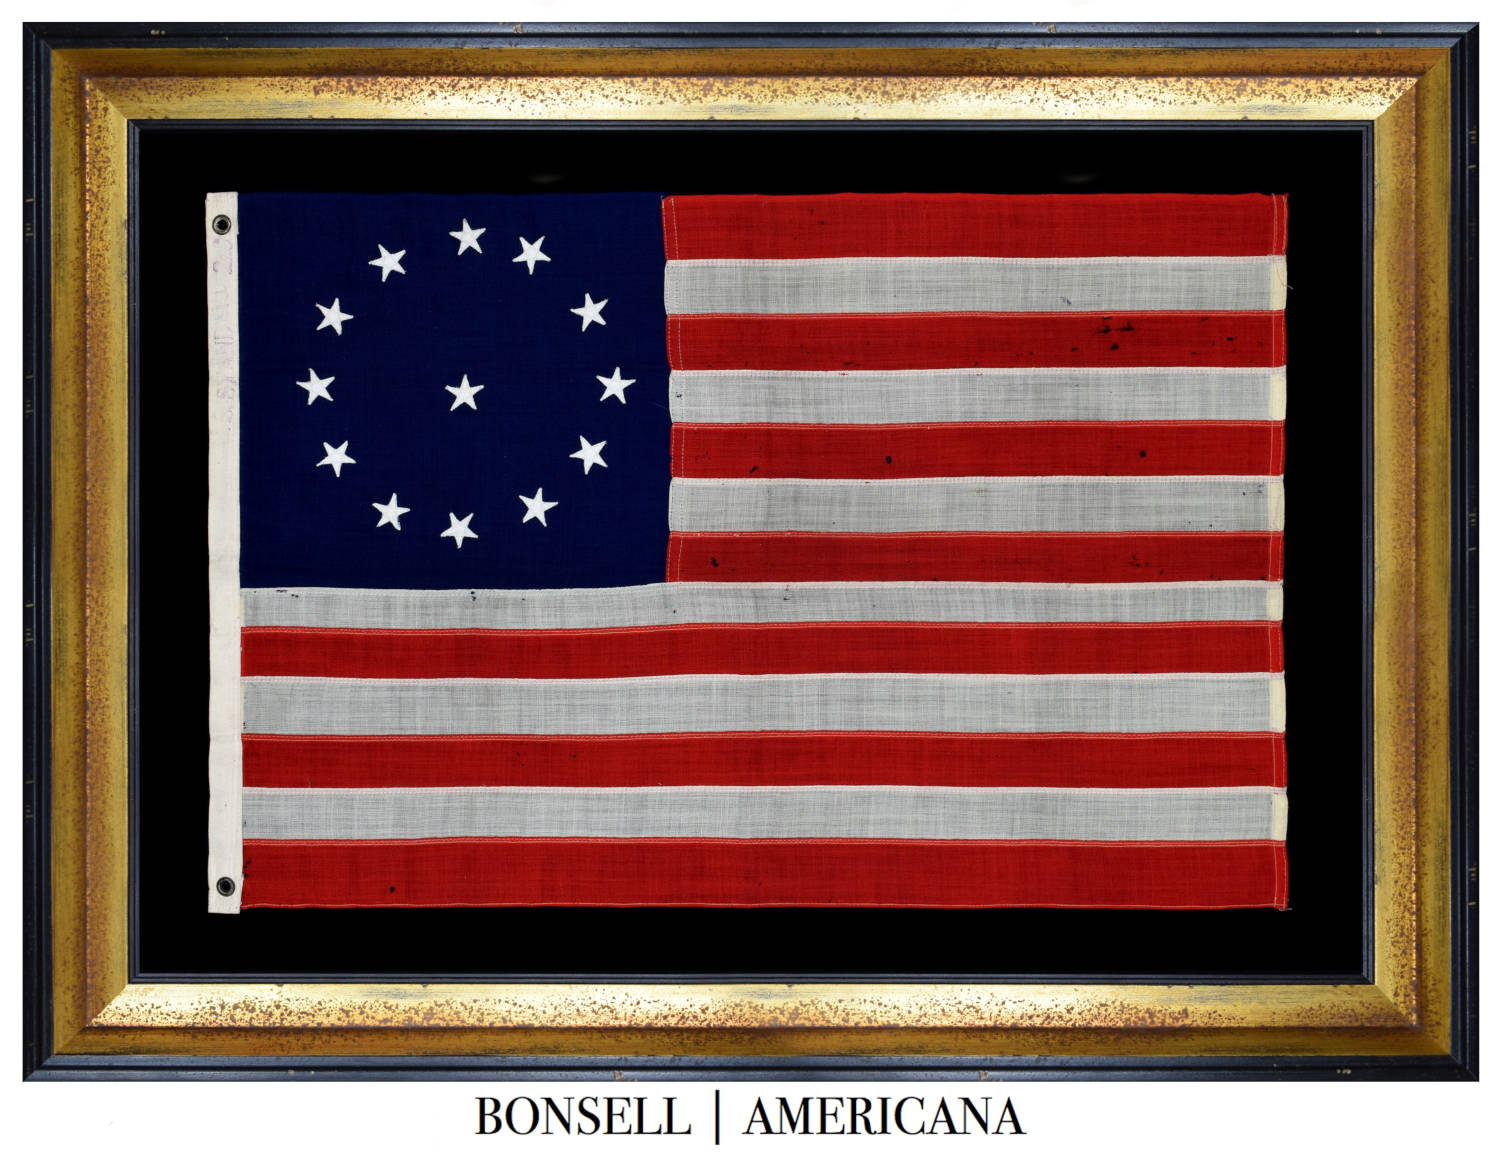 13 Star Antique Cowpens Flag